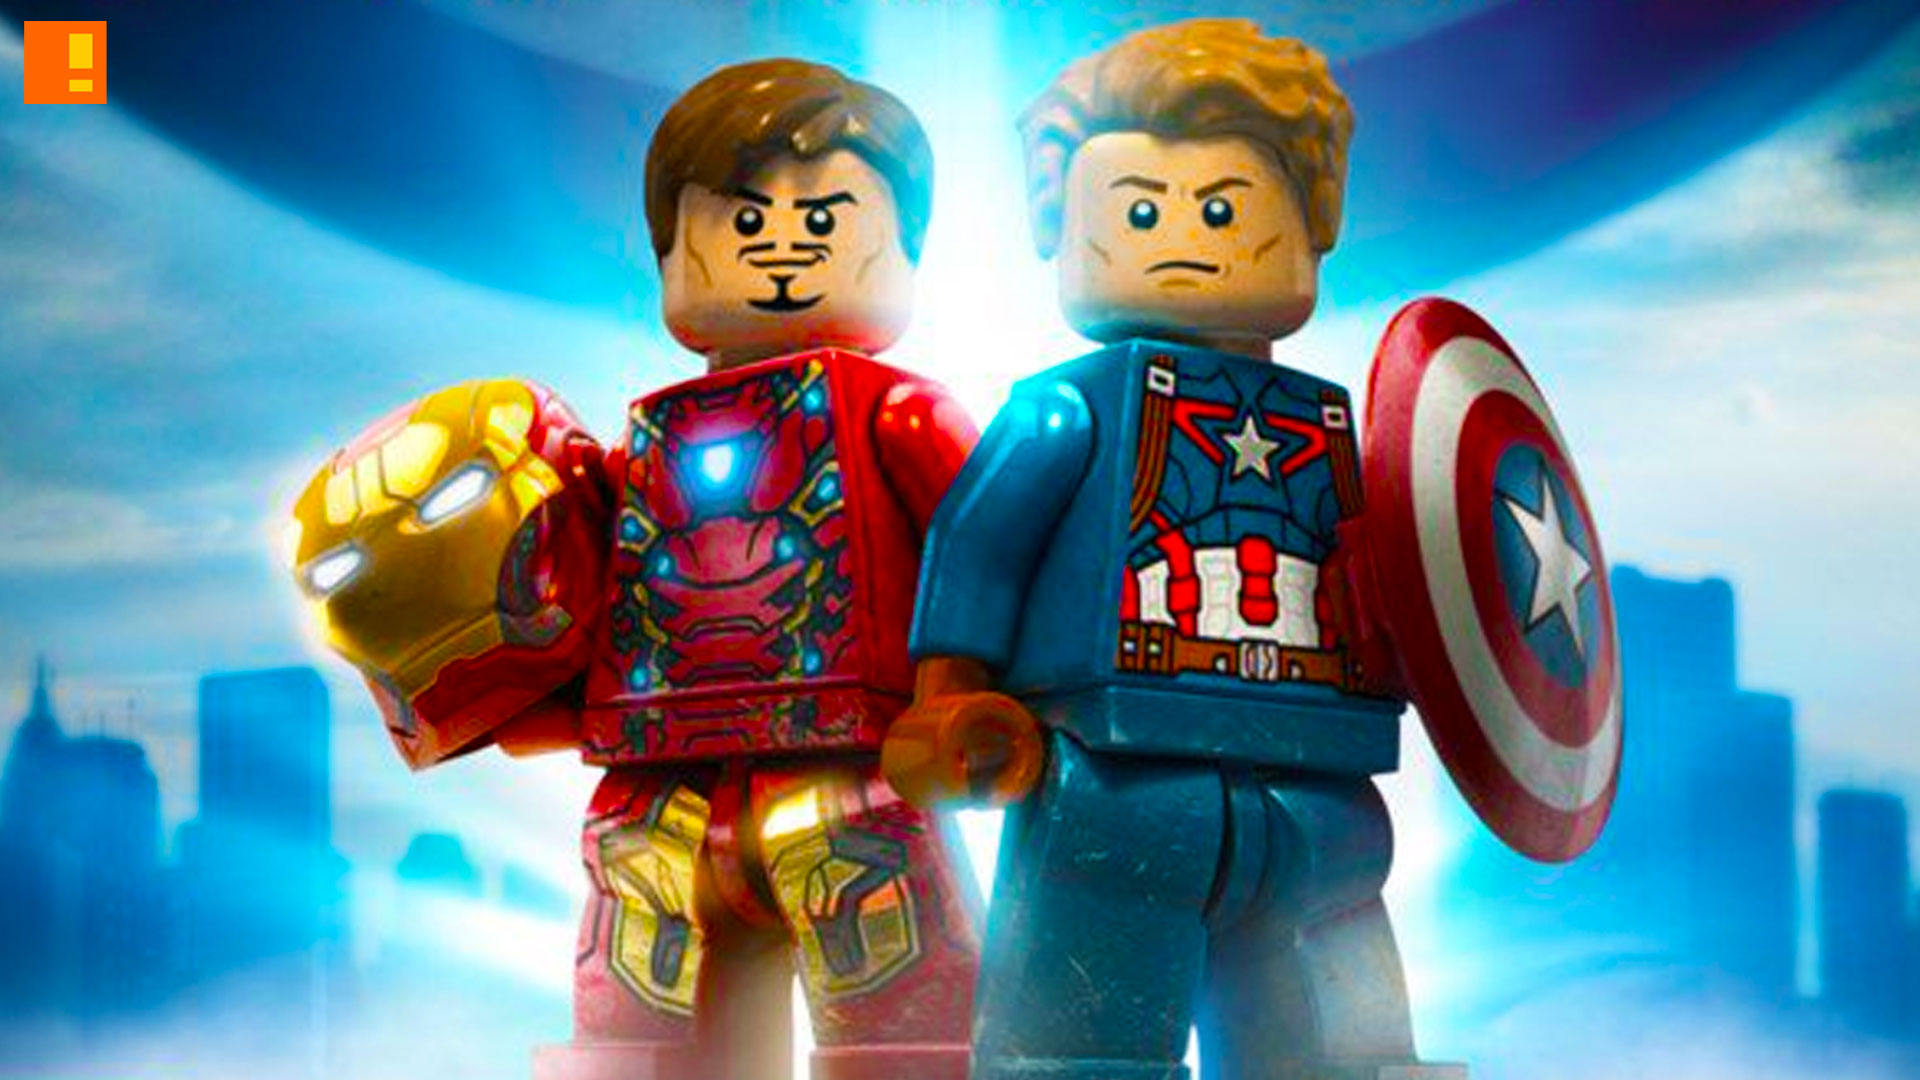 lego marvel avengers captain america civil war character pack. @theactionpixel. the action pixel.